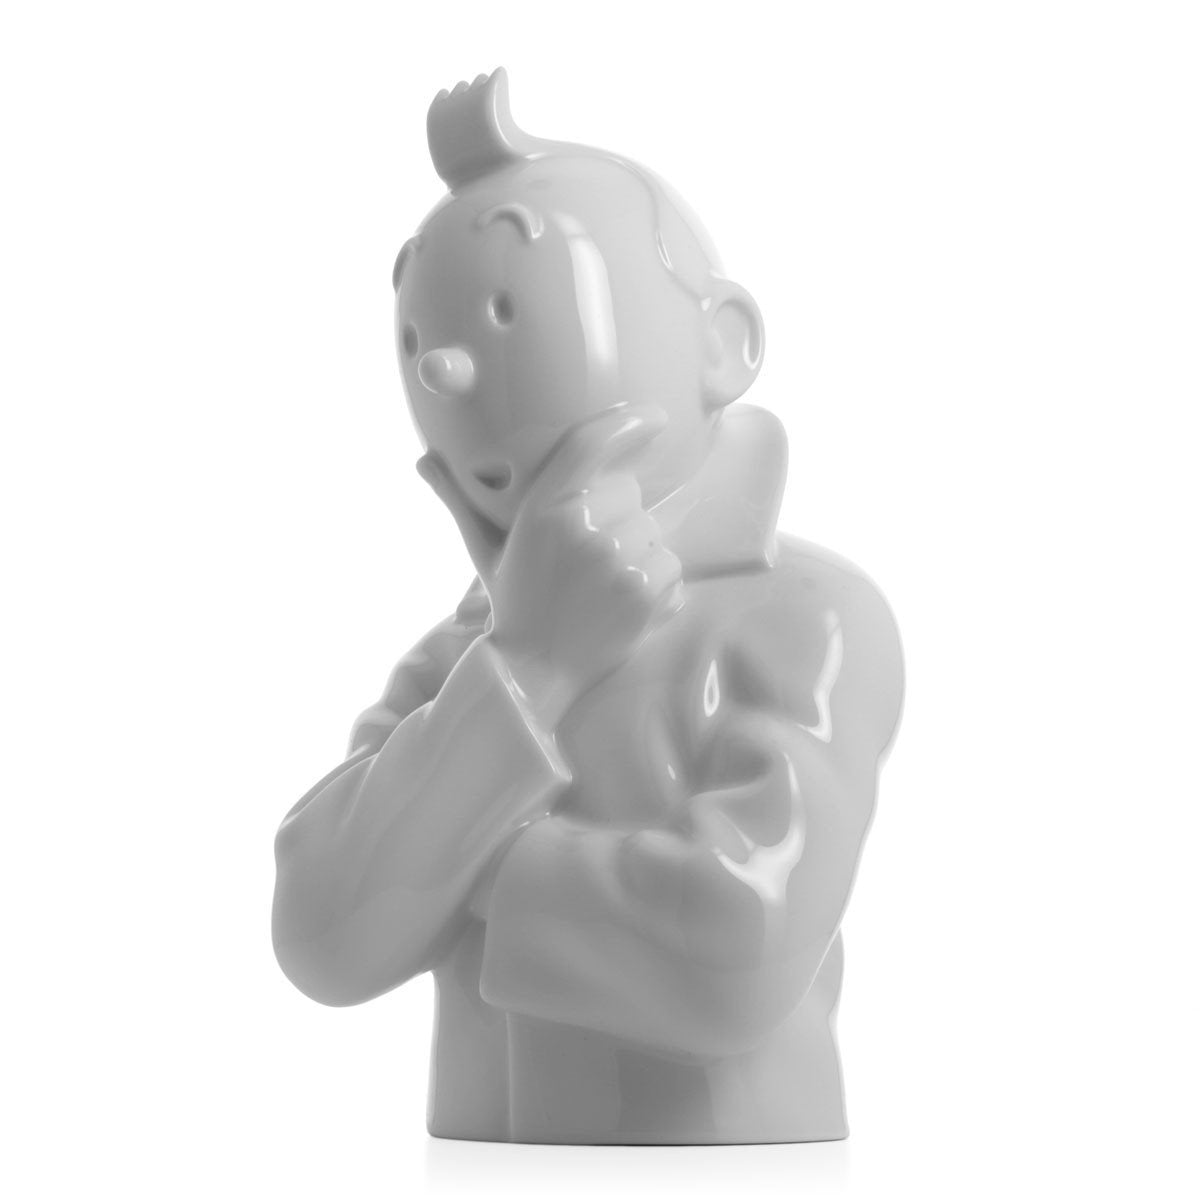 PORCELAIN BUST - TINTIN THINK GLOSSY